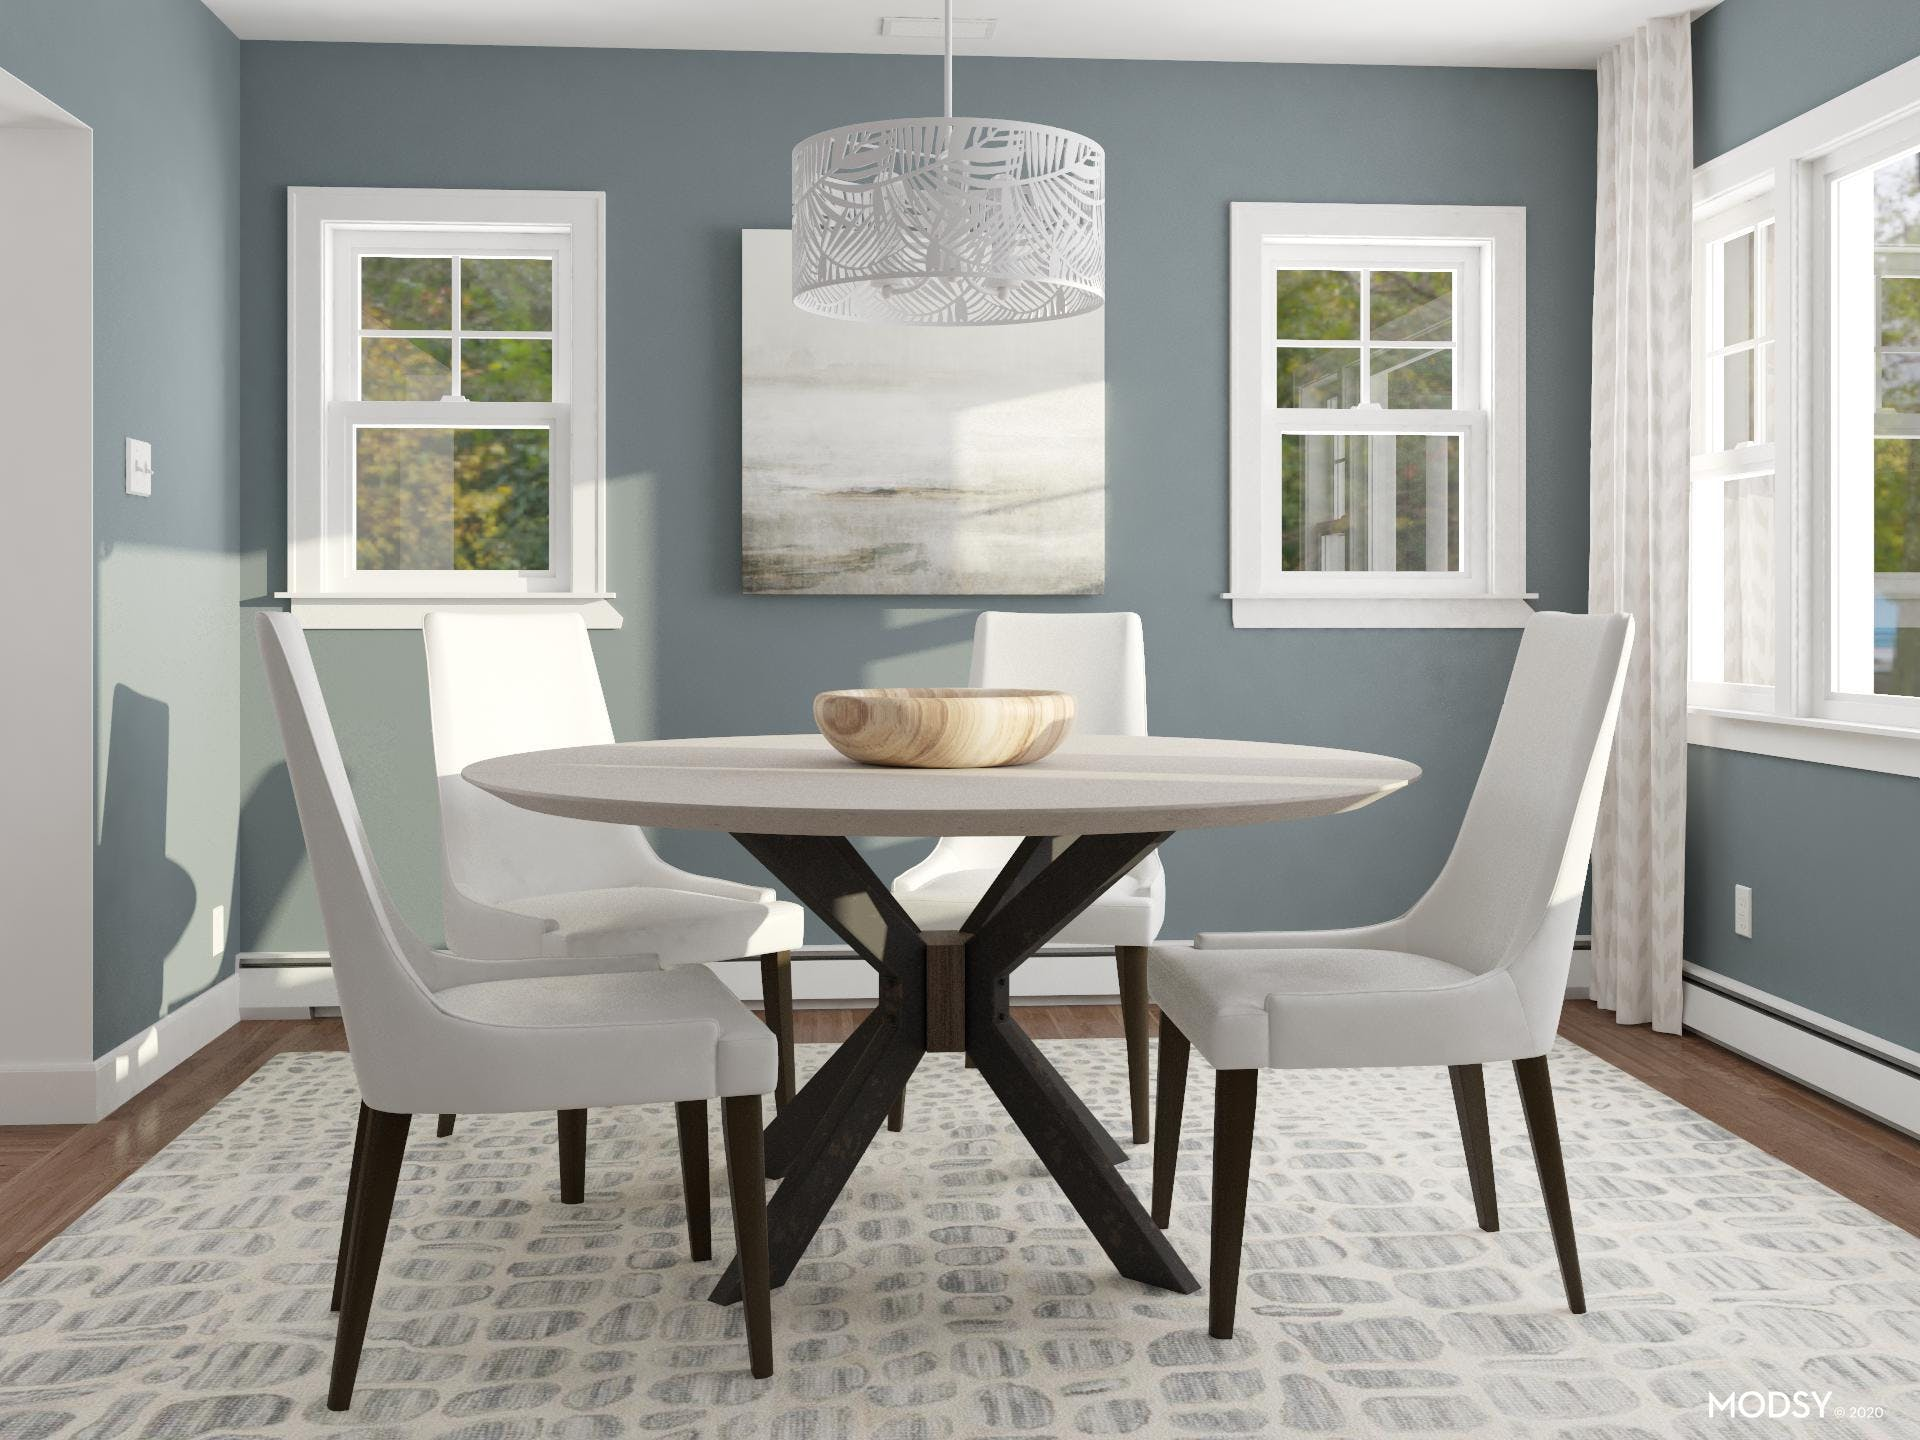 High Contrast is The New Subtle Transitional Dining Room